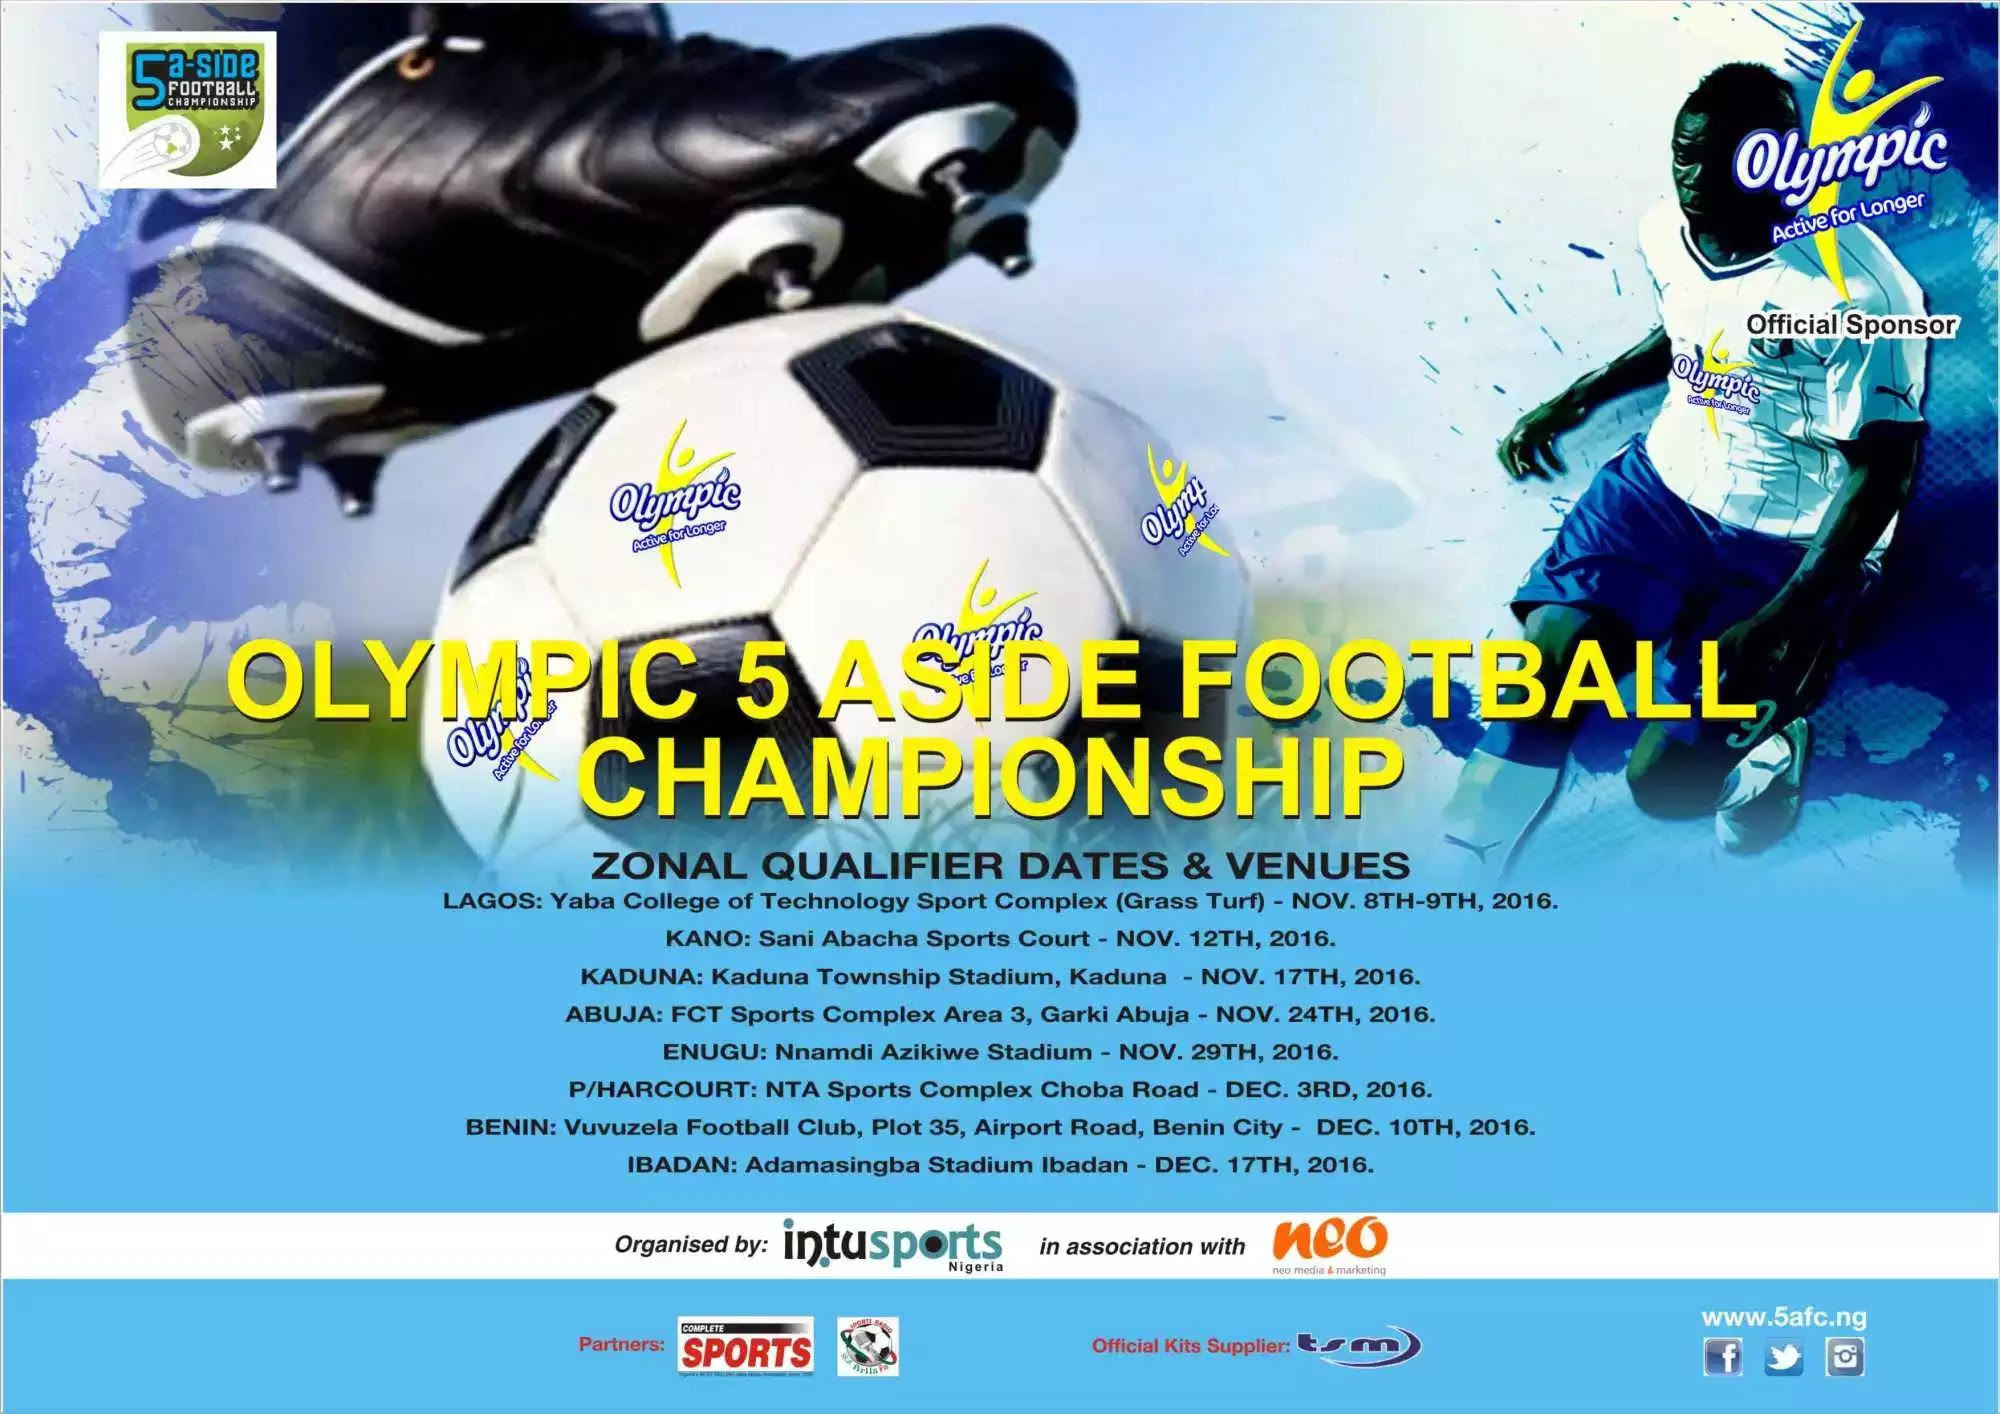 16 Teams Fight For Olympic 5-A-Side Football Championship Season-2 Title